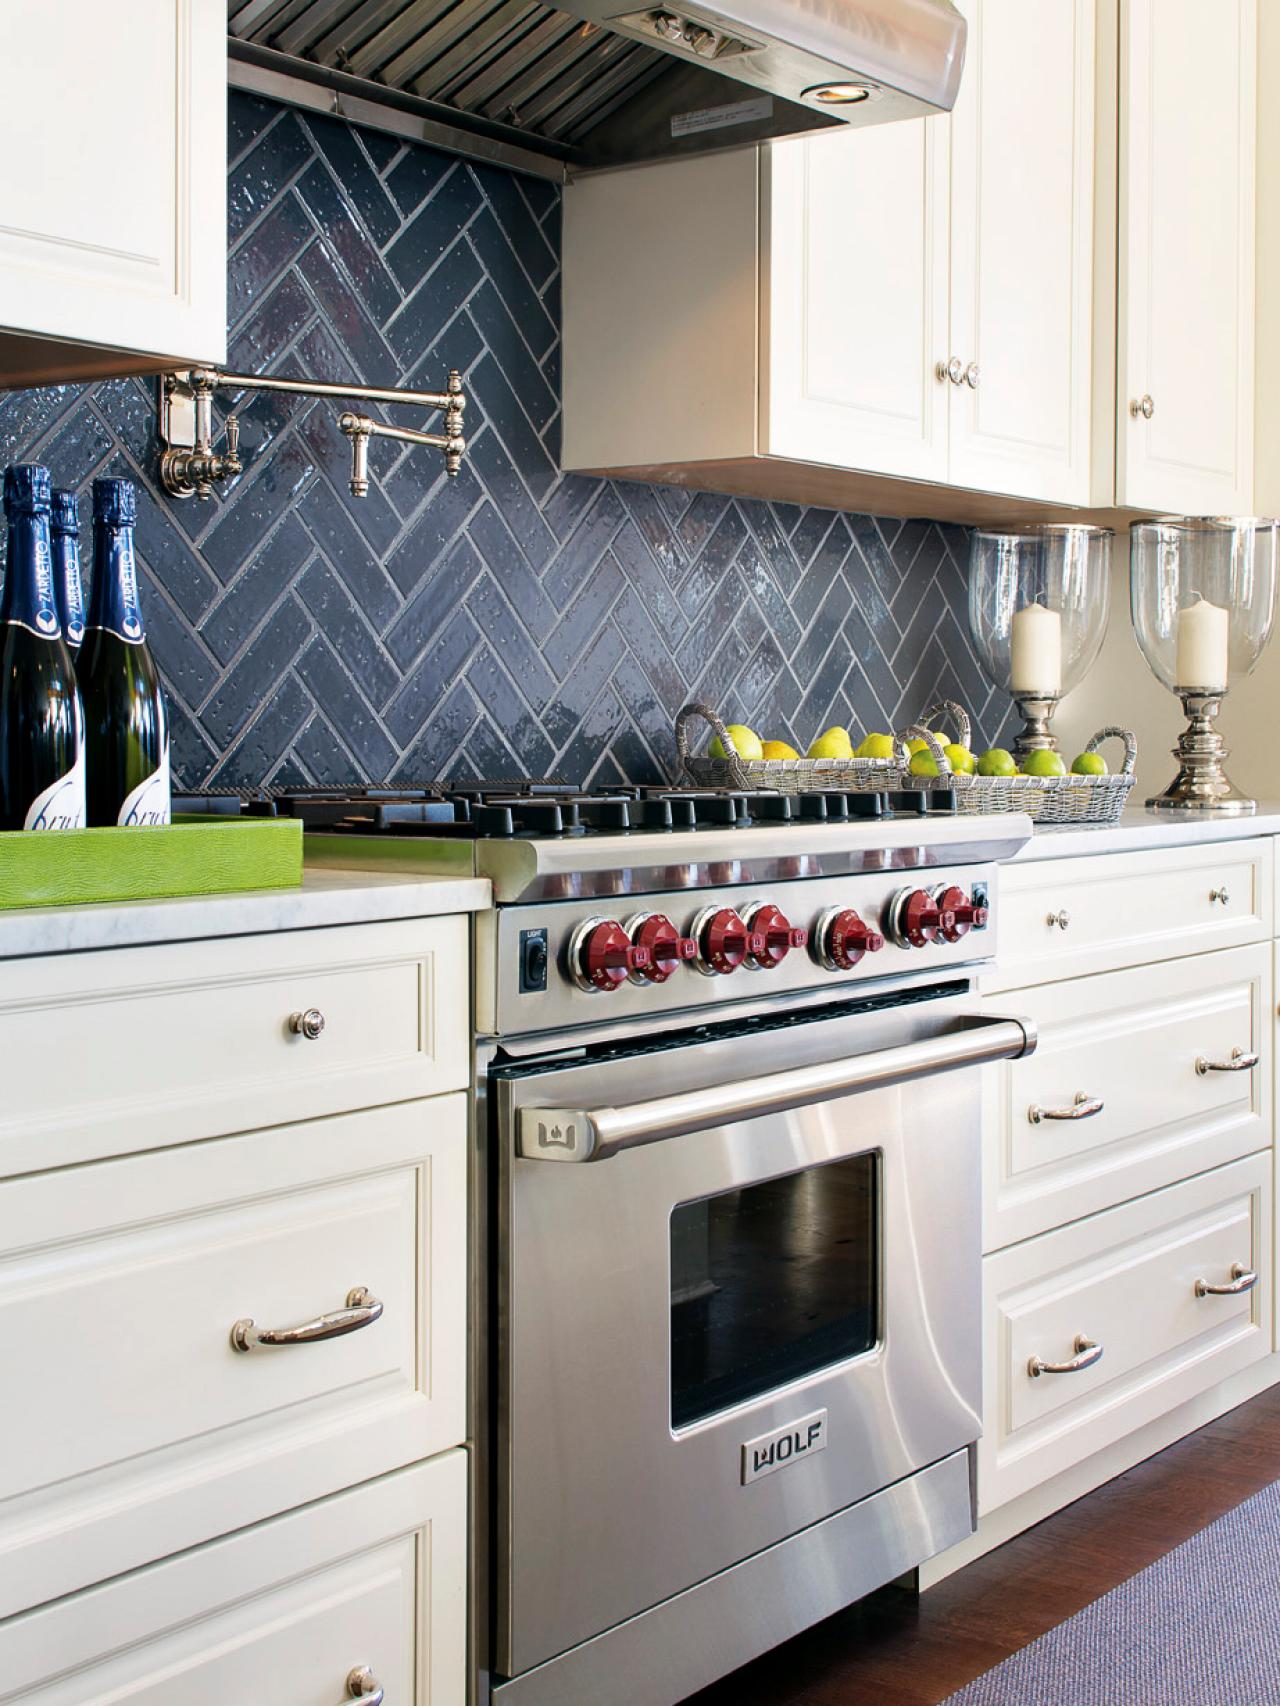 Uncategorized Plastic Kitchen Backsplash fasade backsplashes hgtv